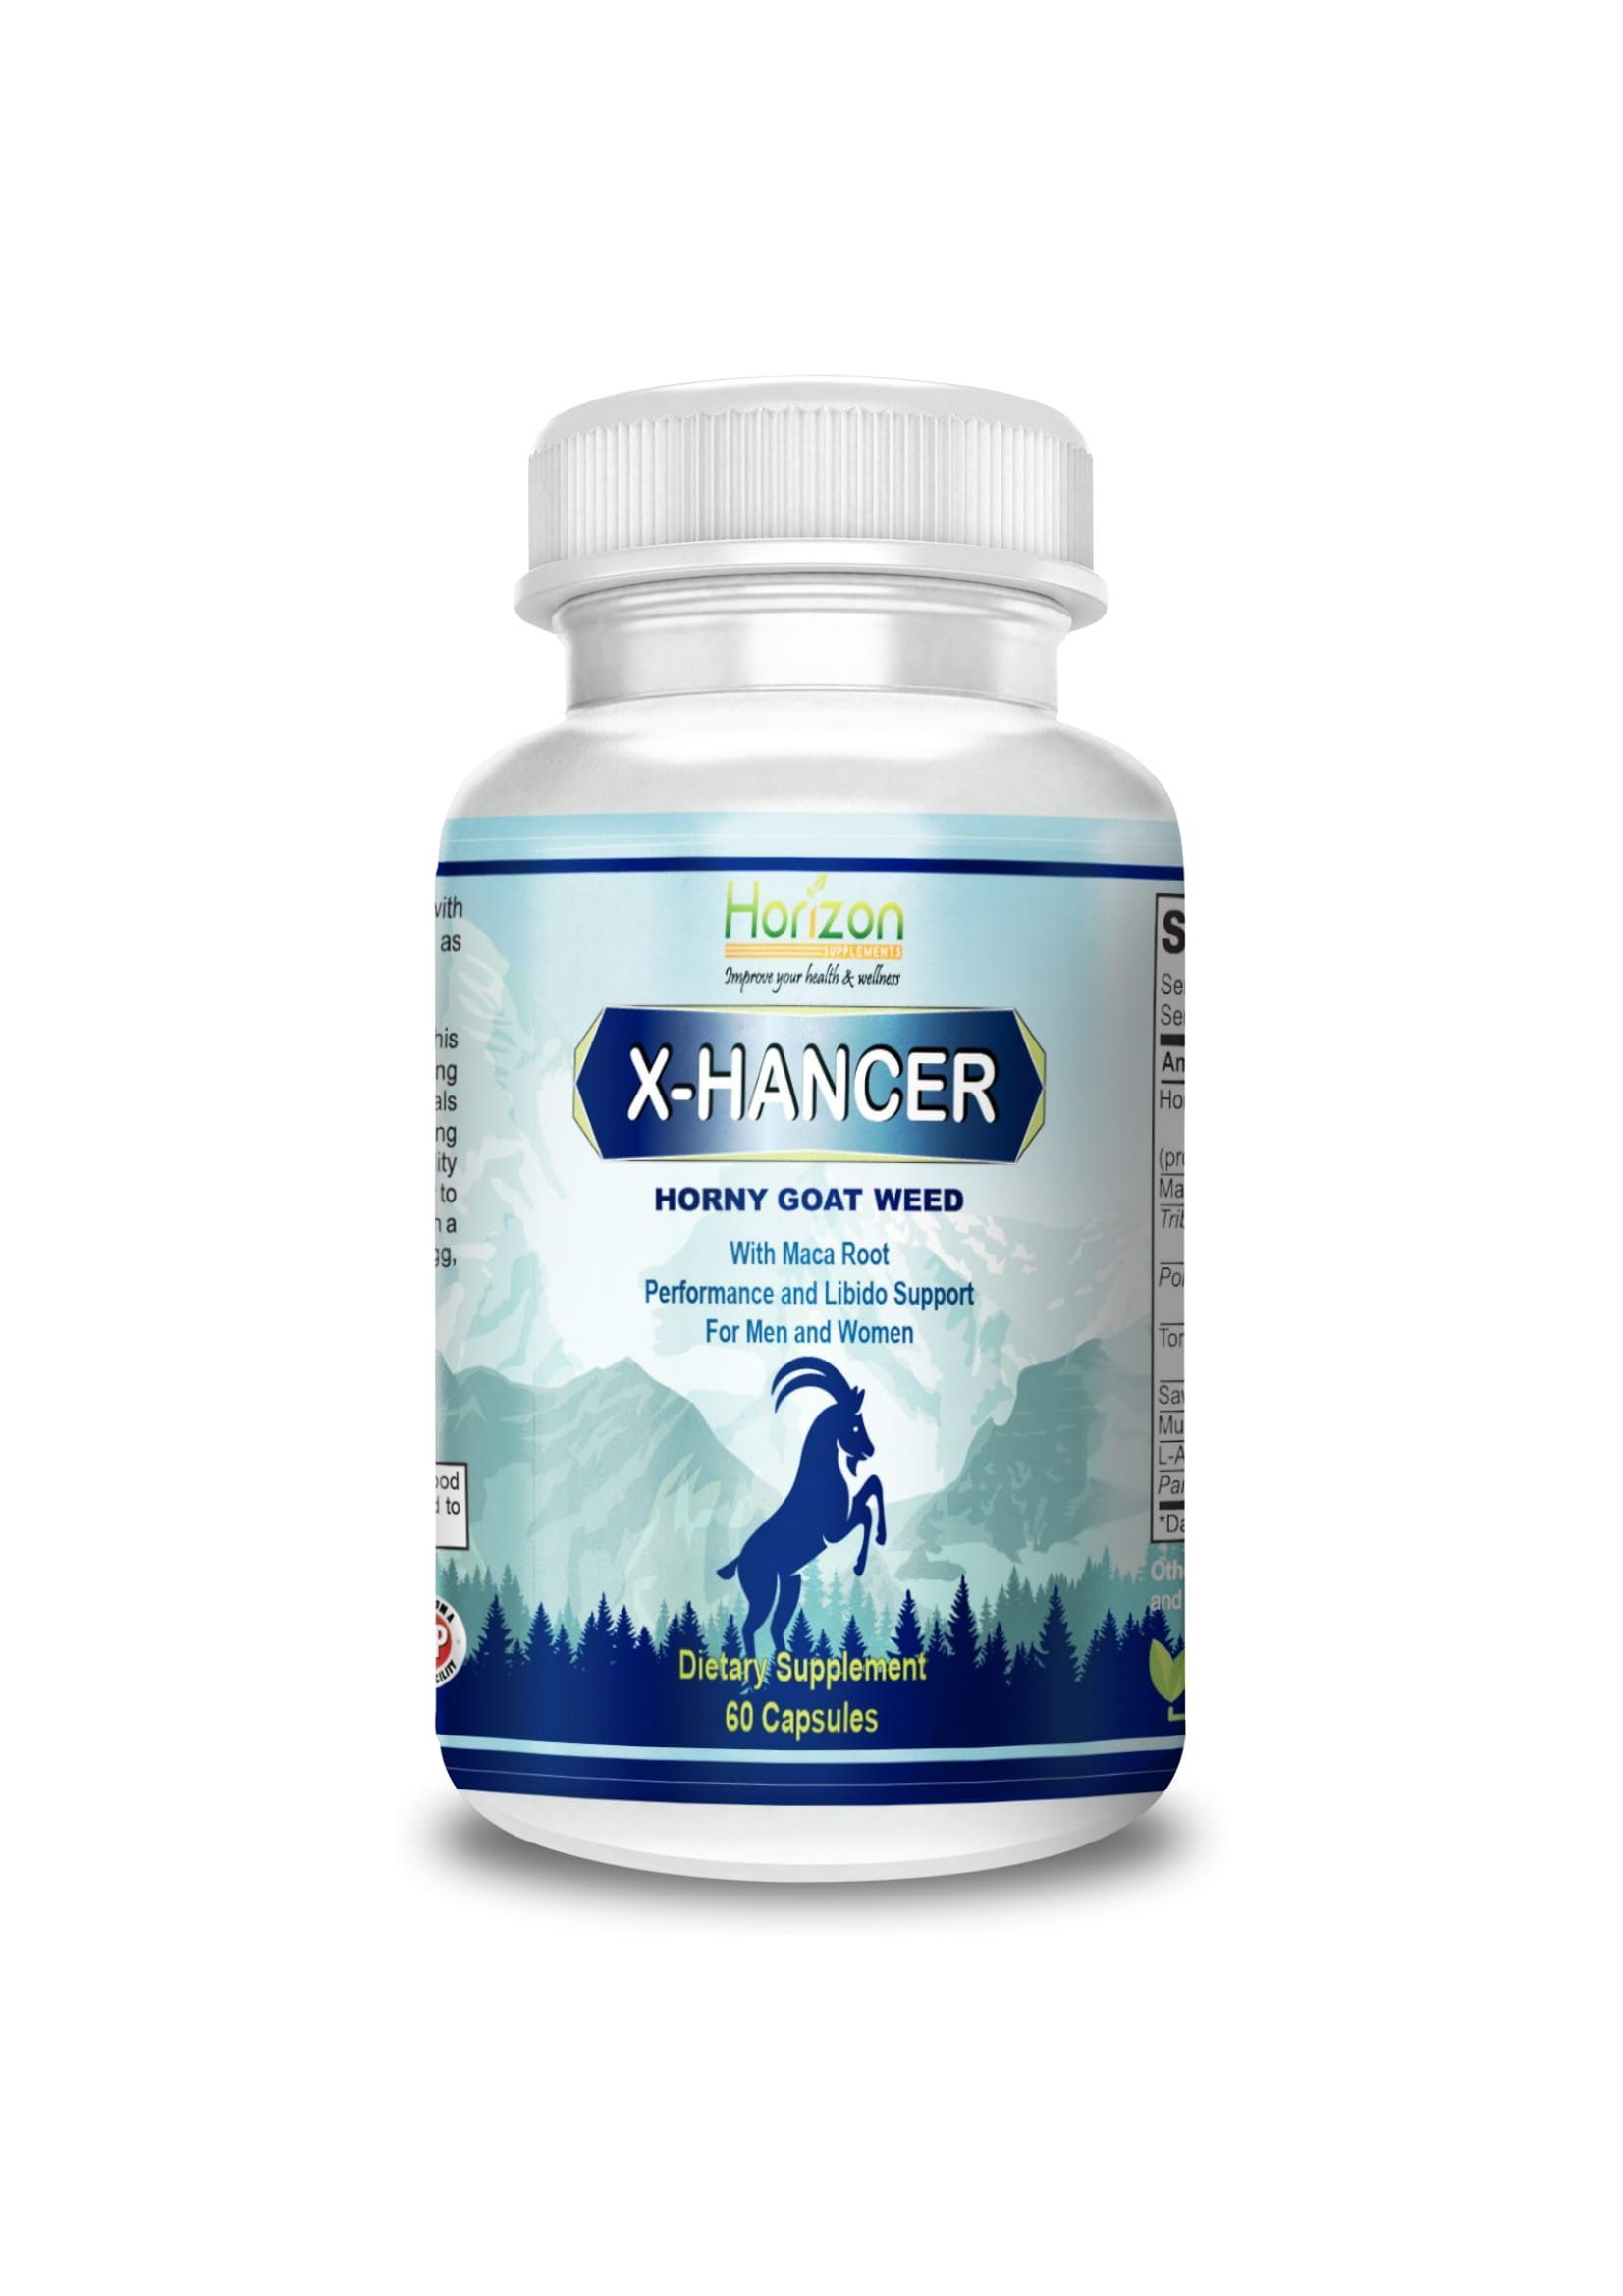 XHancer Best Potent Horny Goat Weed Extract with Maca Root â